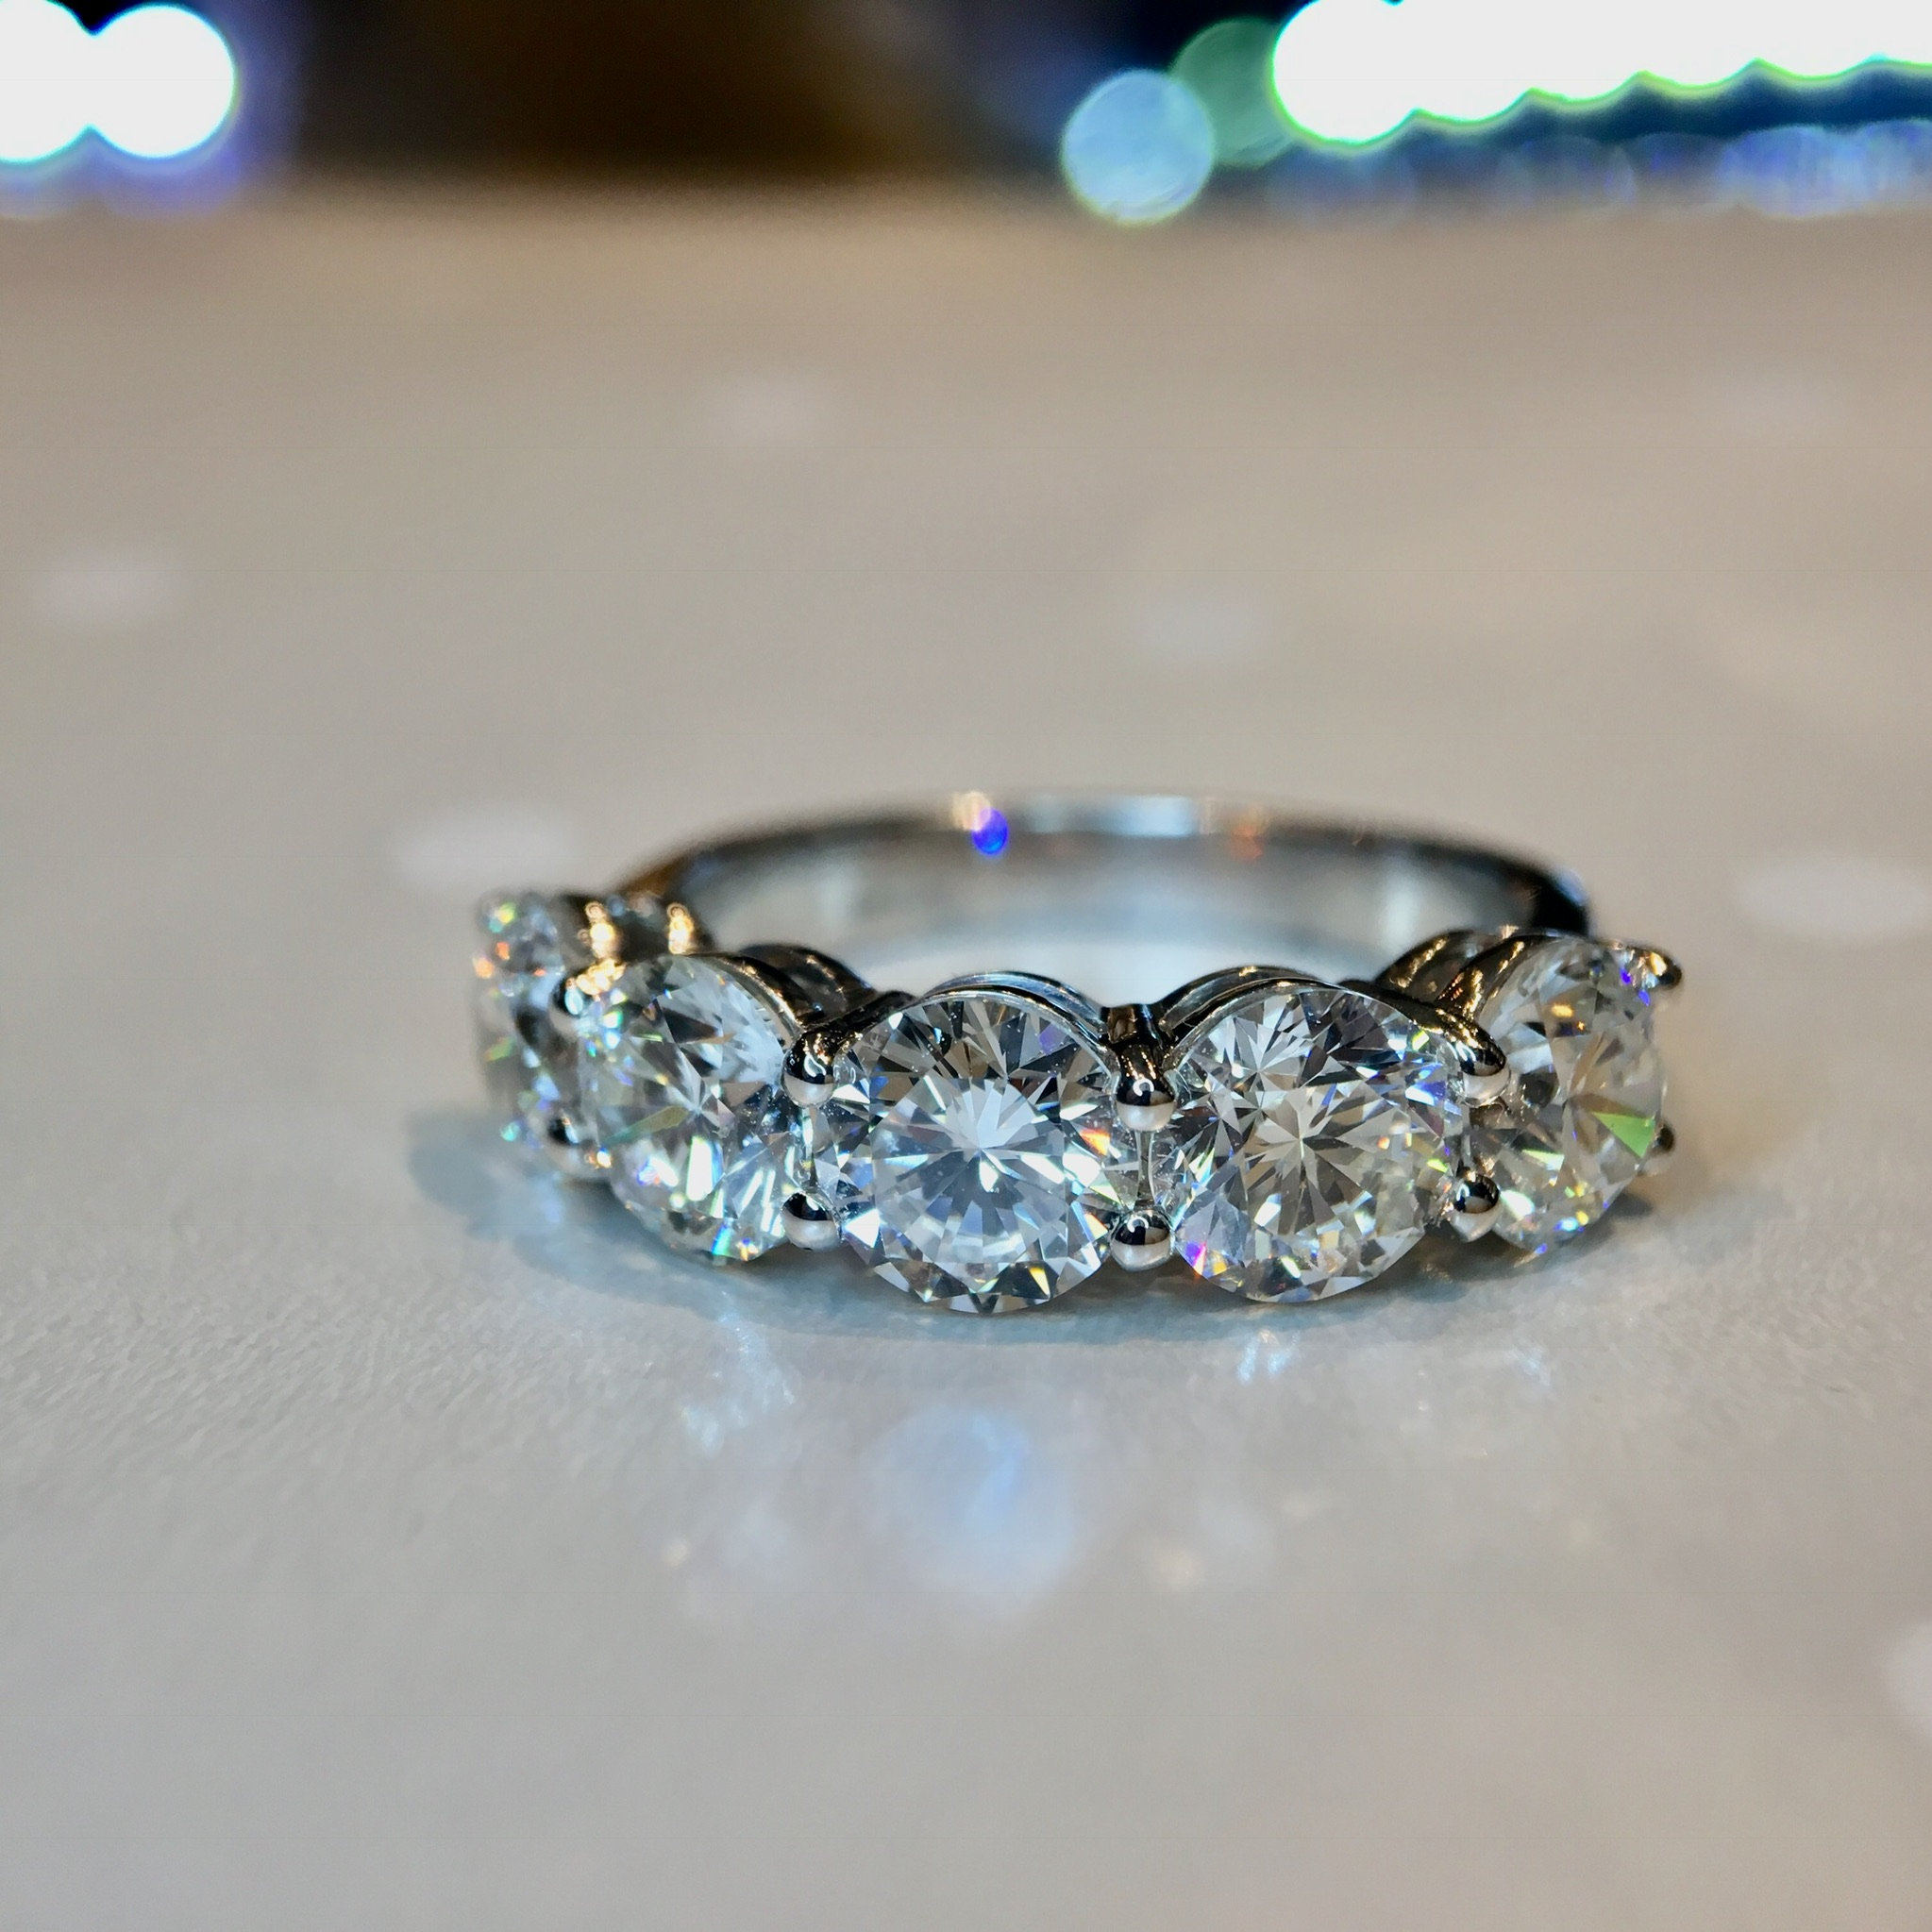 diamond right product laurie chrysoberyl il designs sarah jewellery fullxfull ring halo home rings engagement hand enjg